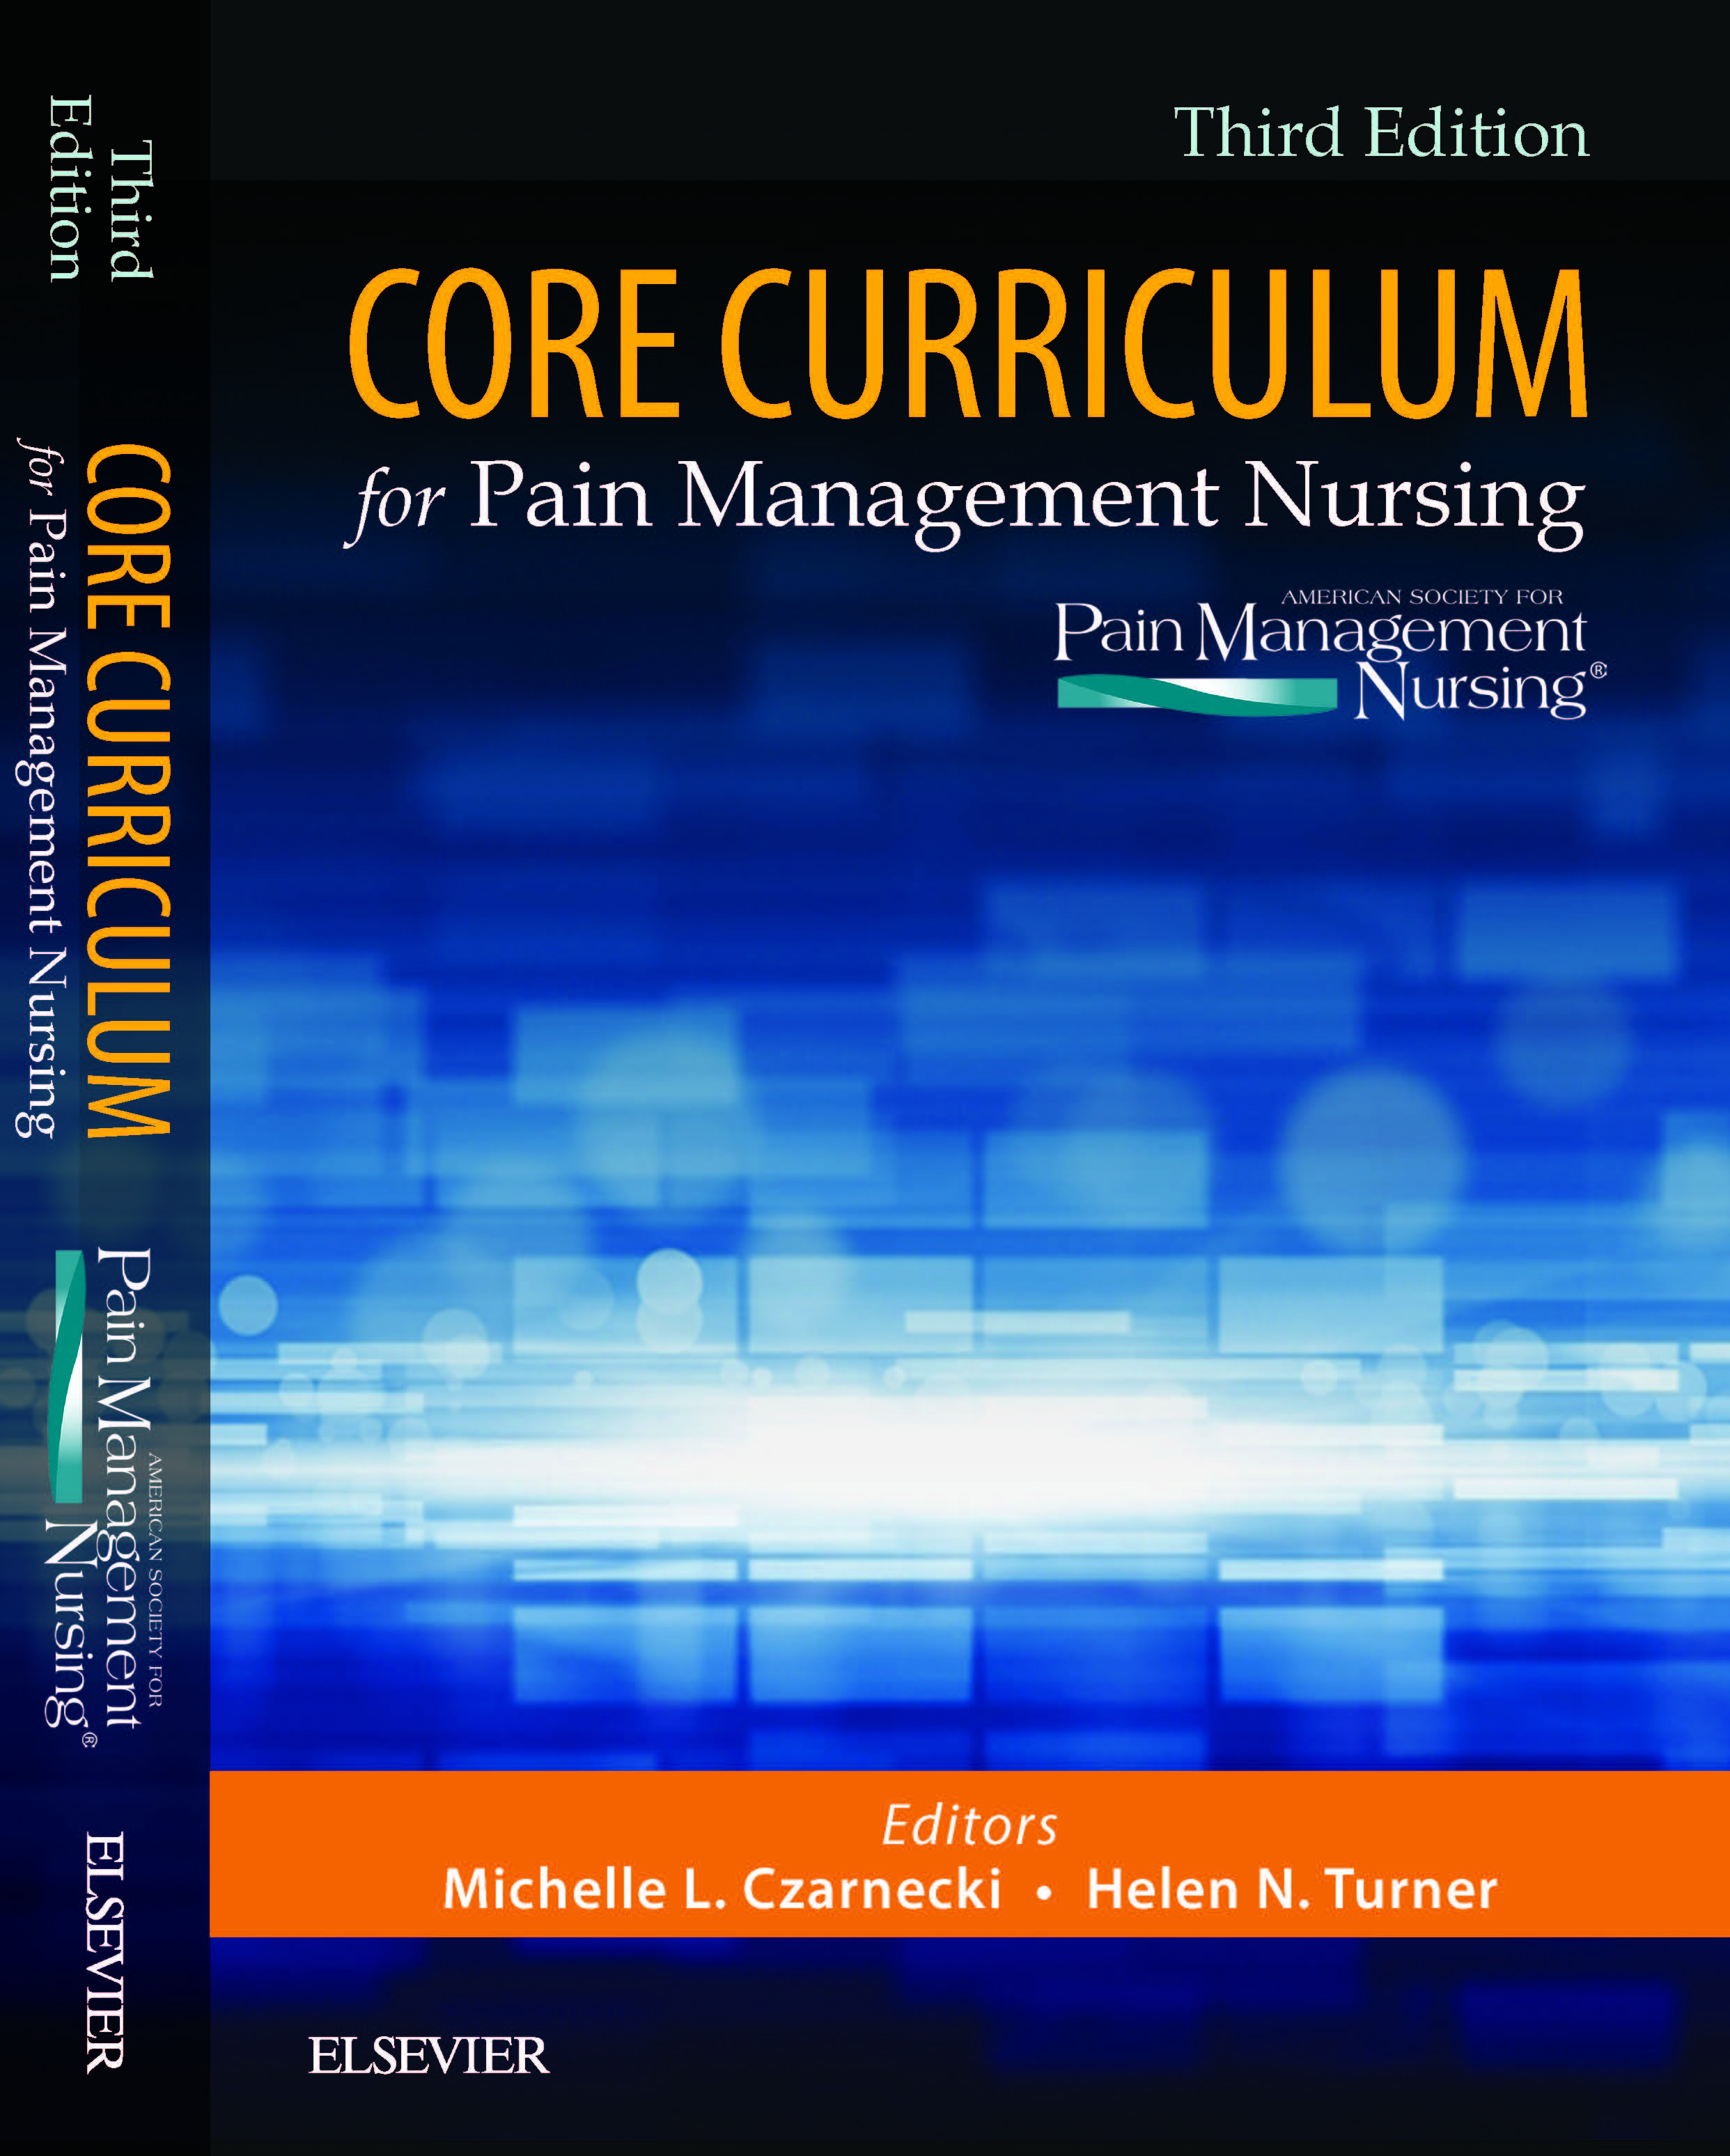 Certification aspmn disclaimer aspmn supports the ancc in its mission to develop fair and reasonable exams to confer pain management nursing certification 1betcityfo Images